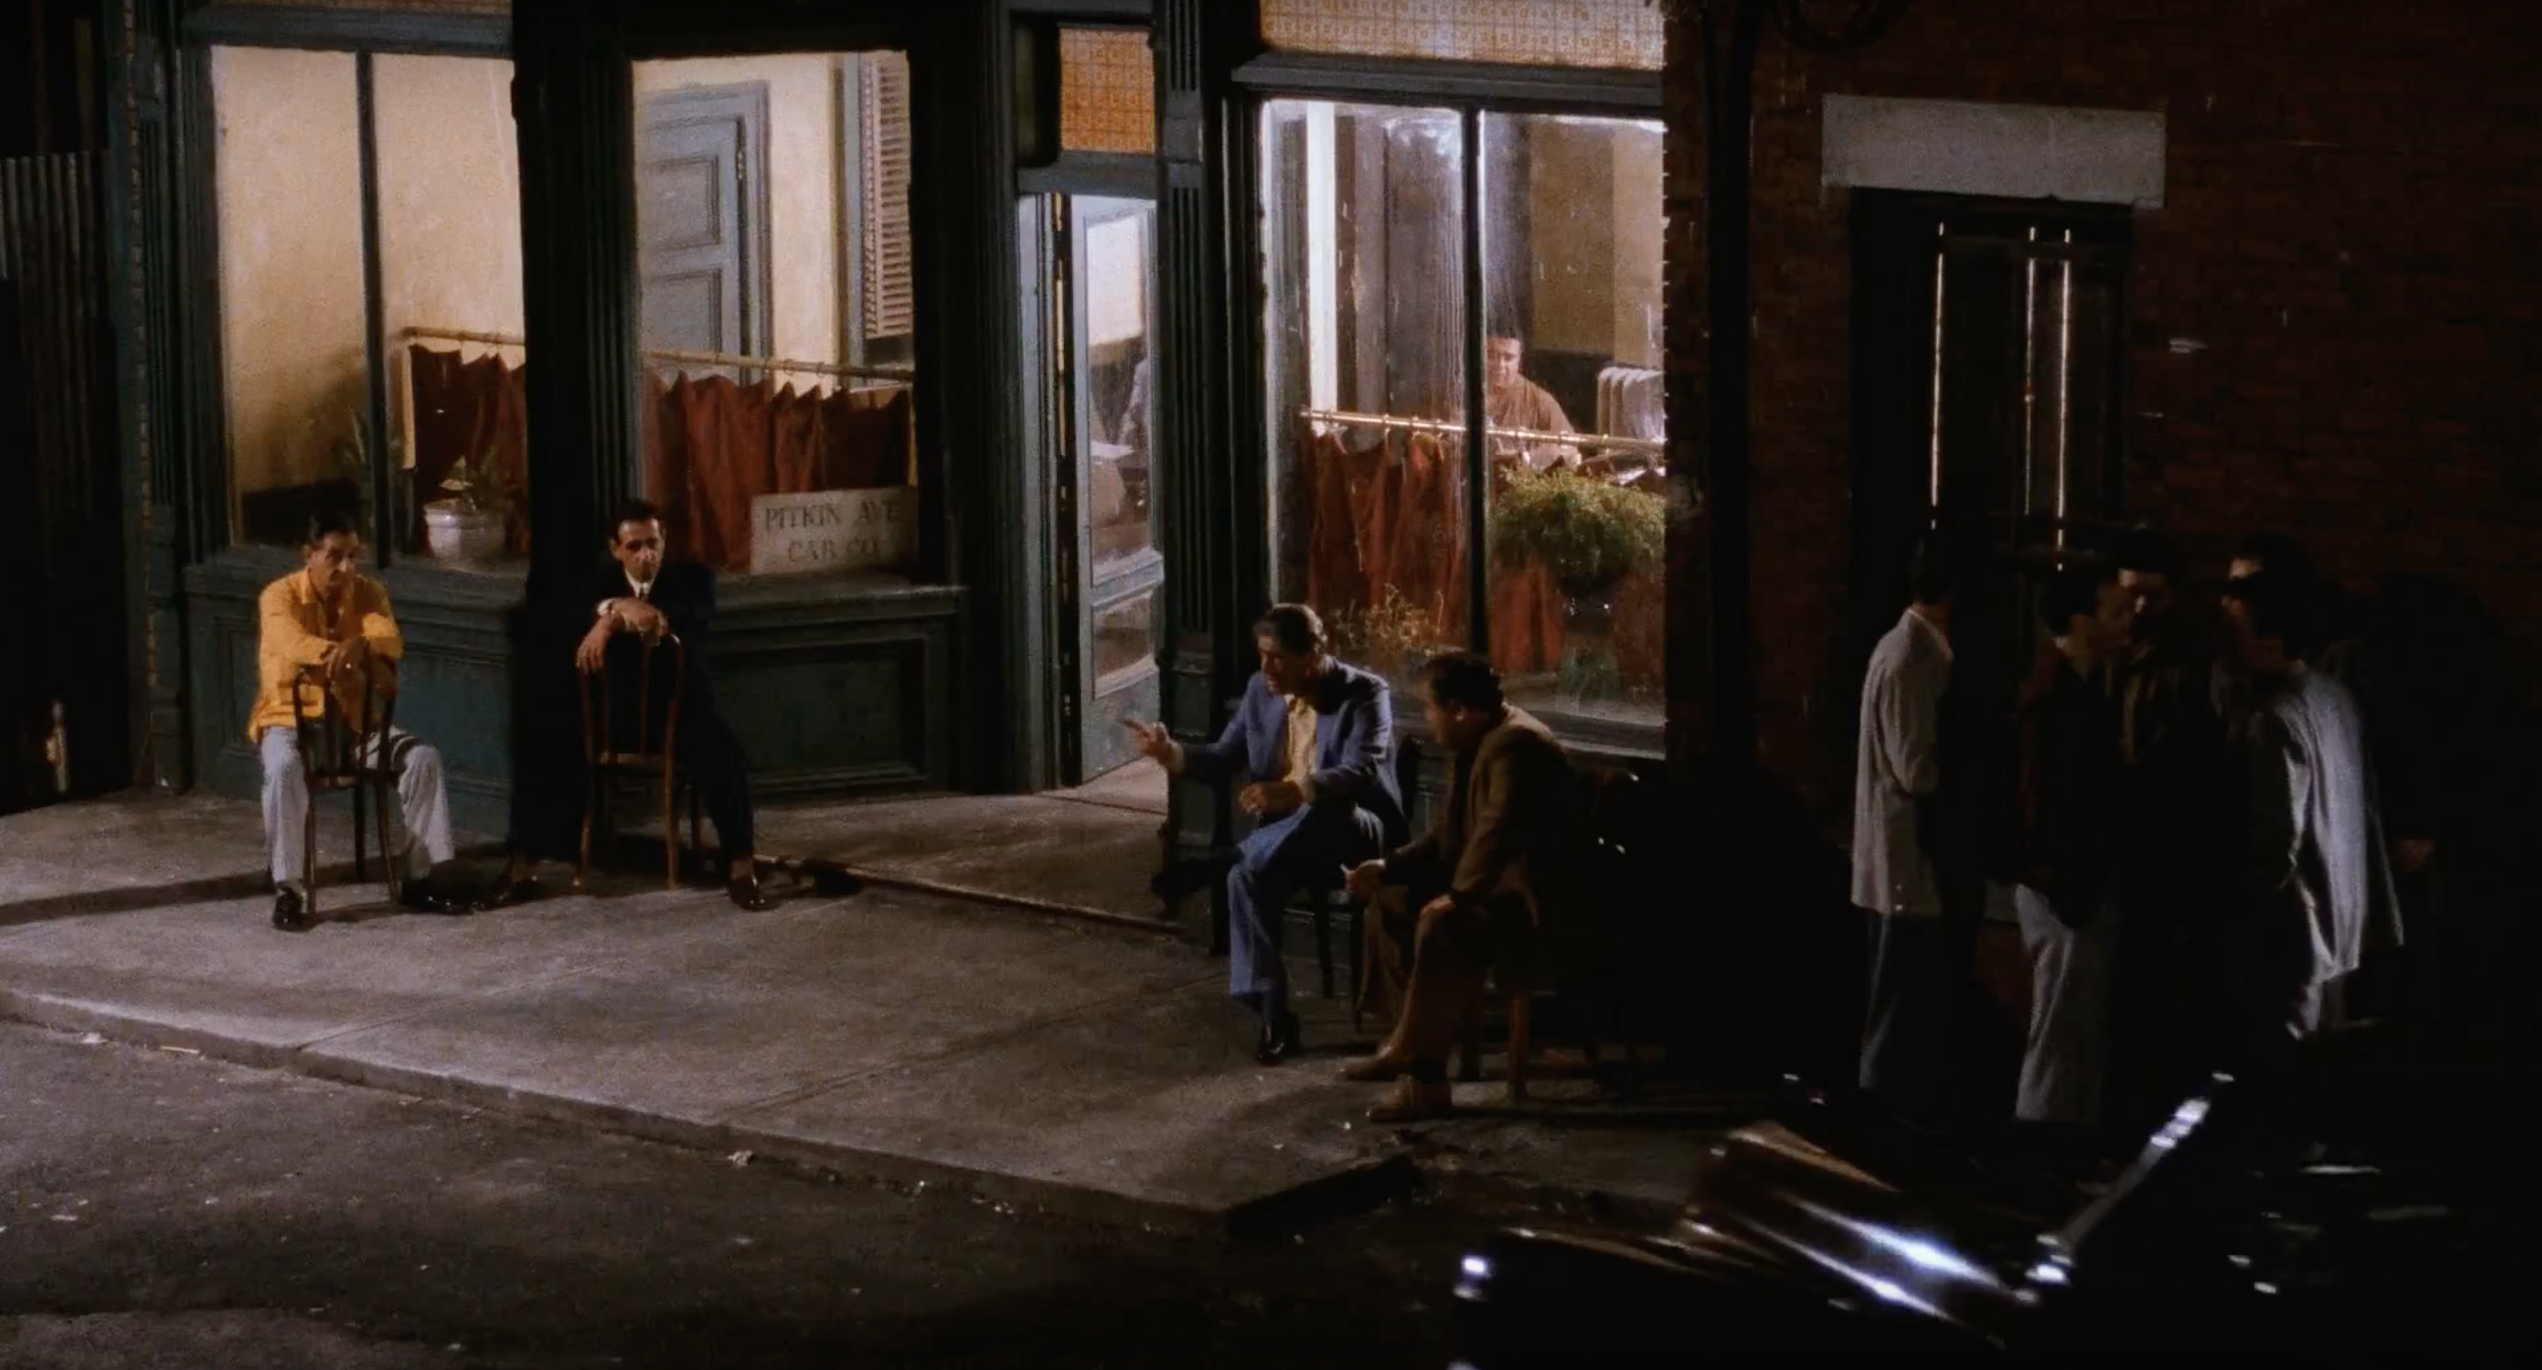 """Revisiting the Astoria, Queens, Locations of """"Goodfellas"""" 30 Years Later 